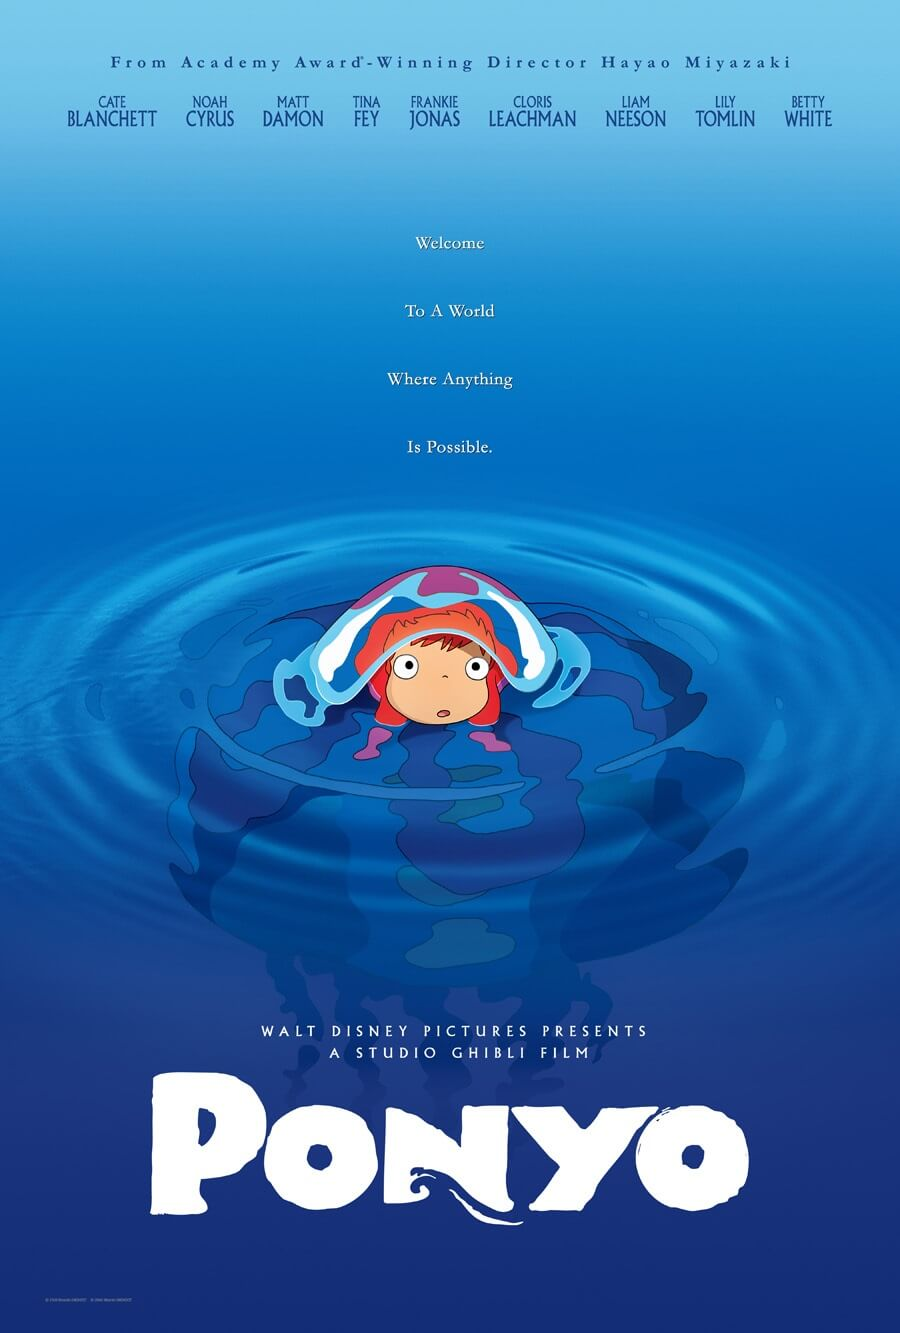 jacob burns film center programs with Ponyo